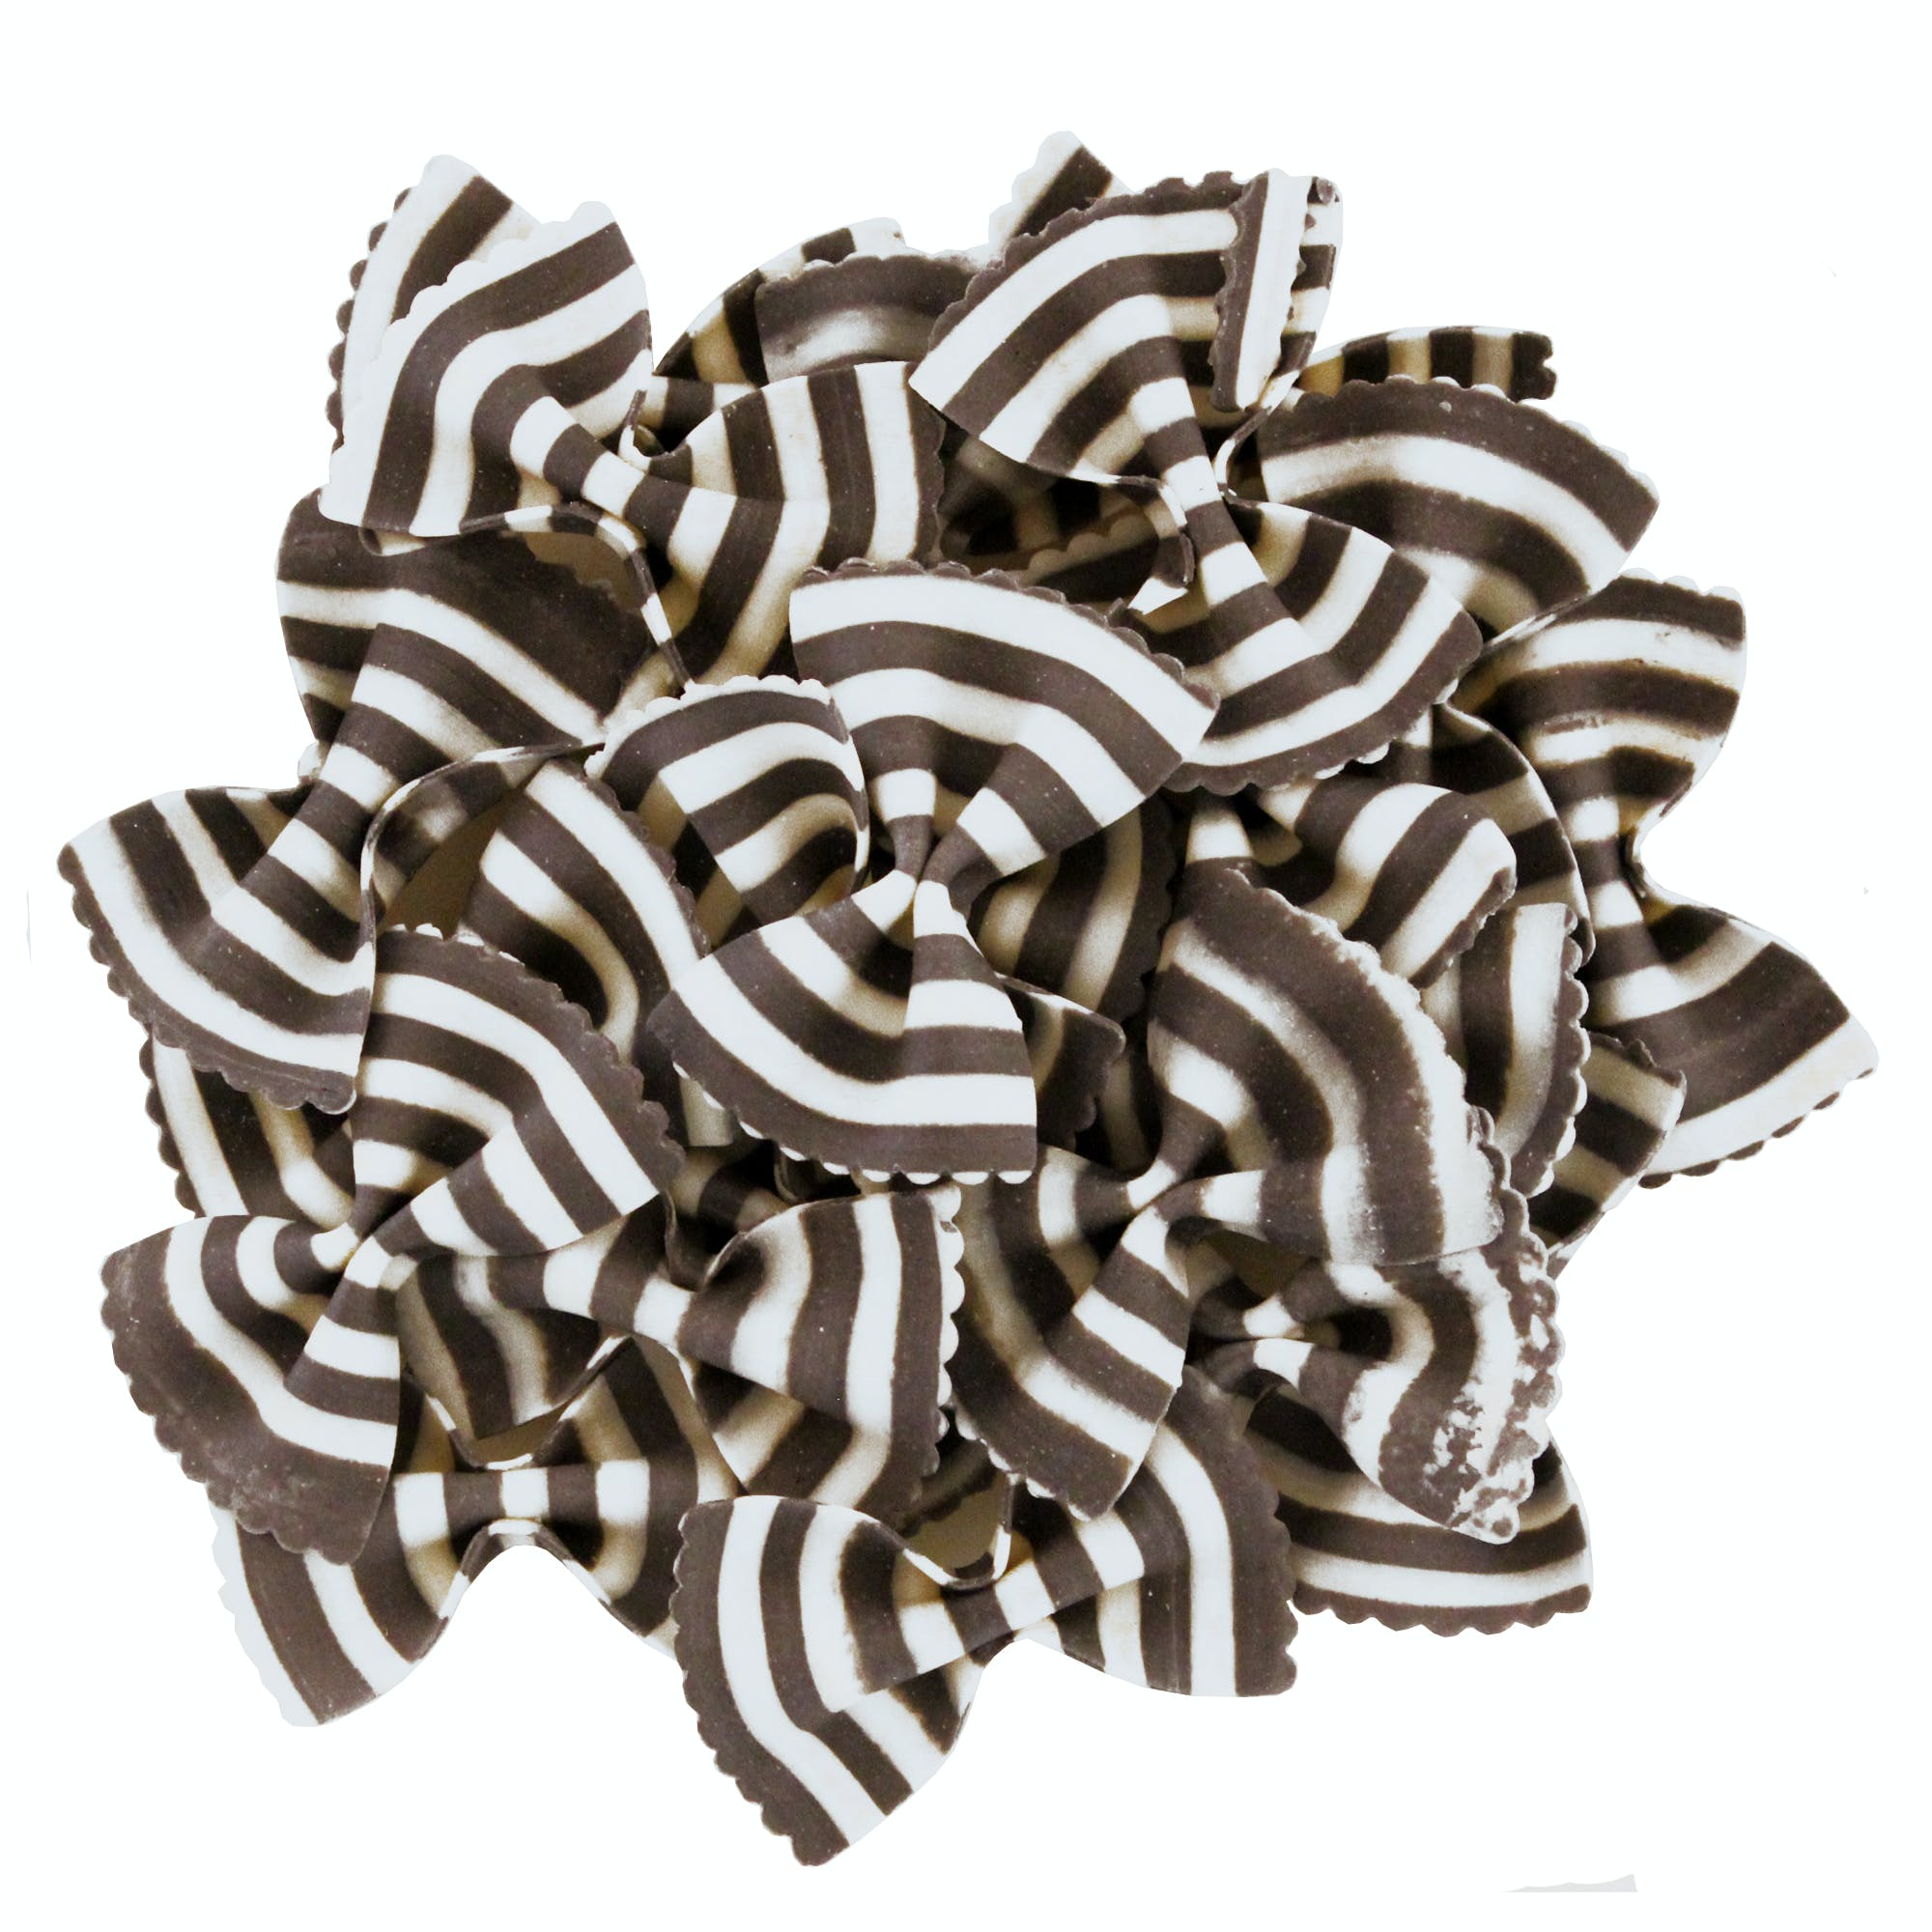 """Zebra Bowties """"Farfalle Magia Bianca"""" Colored Pasta Pasta sold by M5 Corporation"""